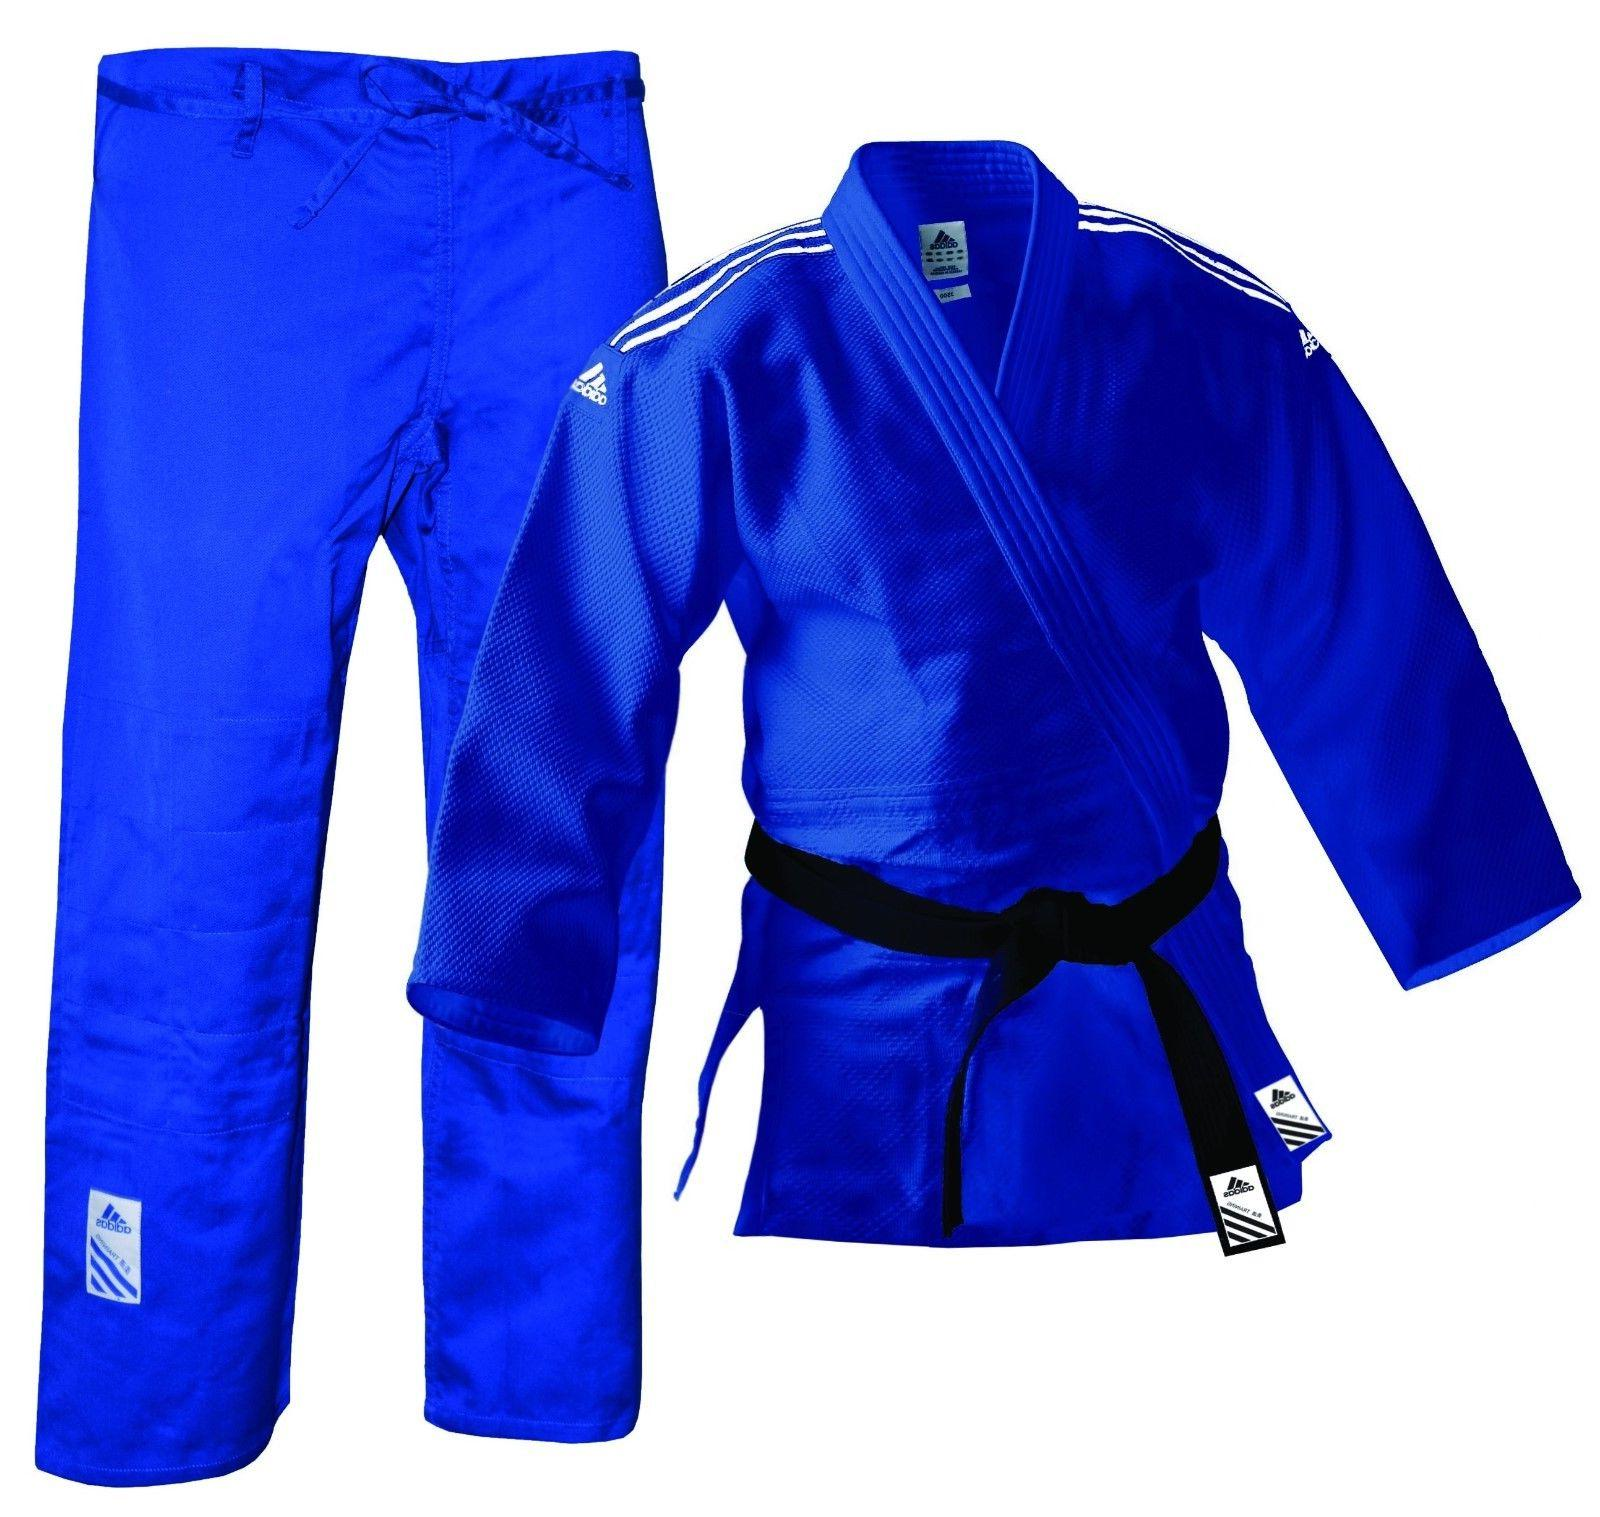 judo uniforms training j500 blue size 160